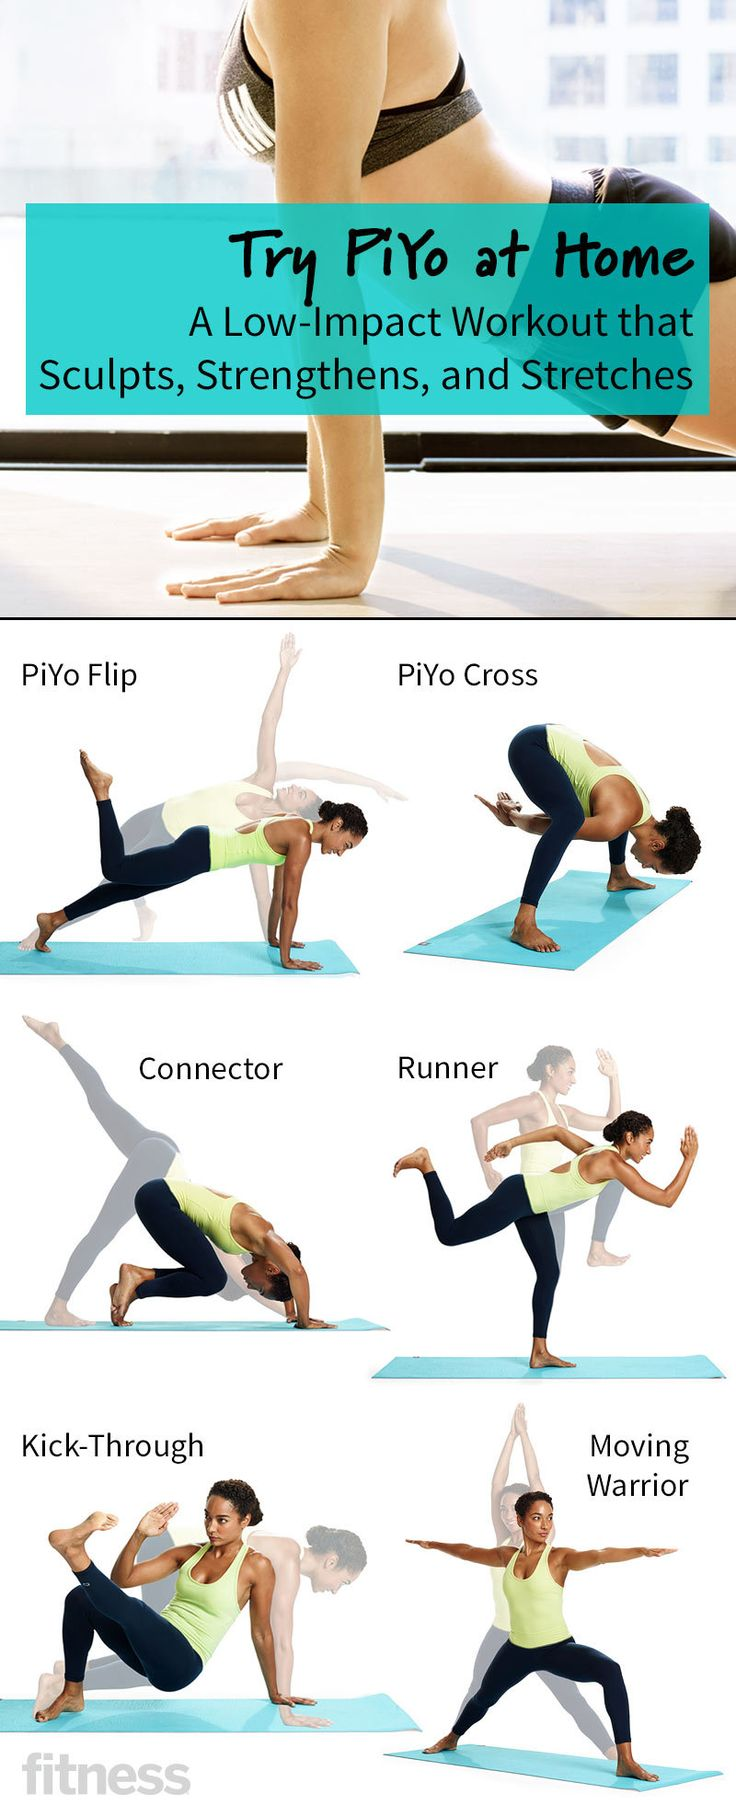 Try PiYo at Home: A Low-Impact Workout That Sculpts, Strengthens and Stretches | #fitness #pilates #yoga